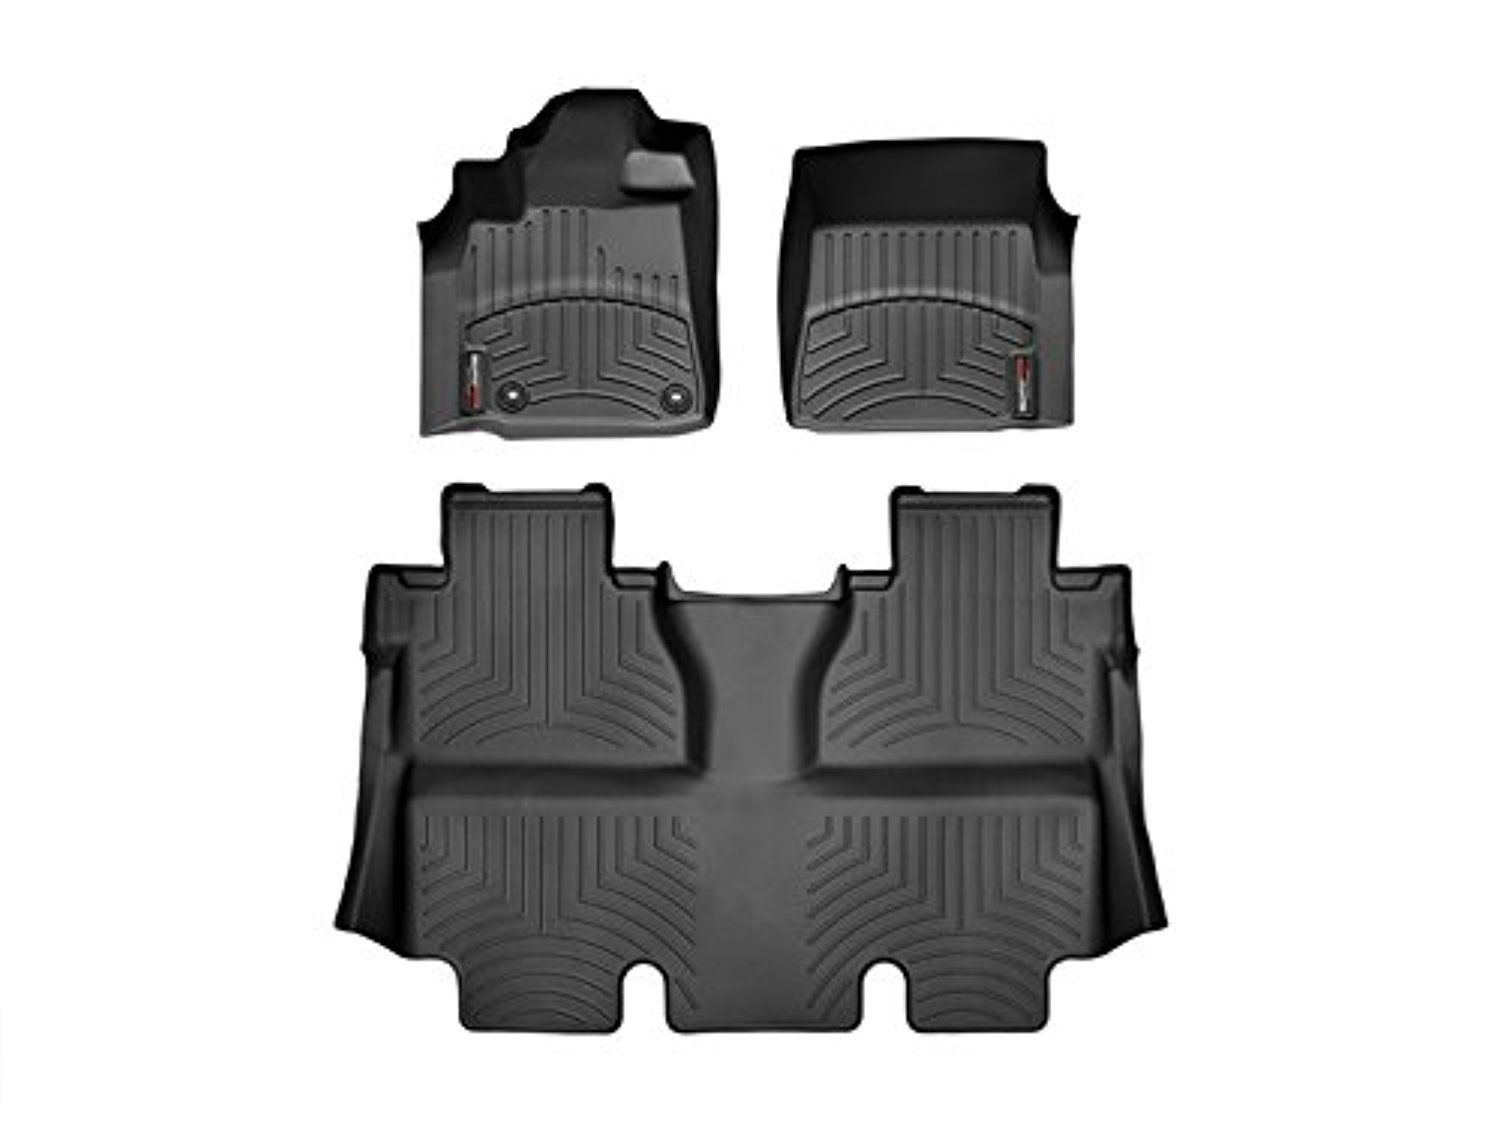 Weathertech 444081 440938 Digitalfit Floorliner Set Click On The Image For Additional Details This Is A Toyota Tundra Crewmax Tundra Crewmax Weather Tech